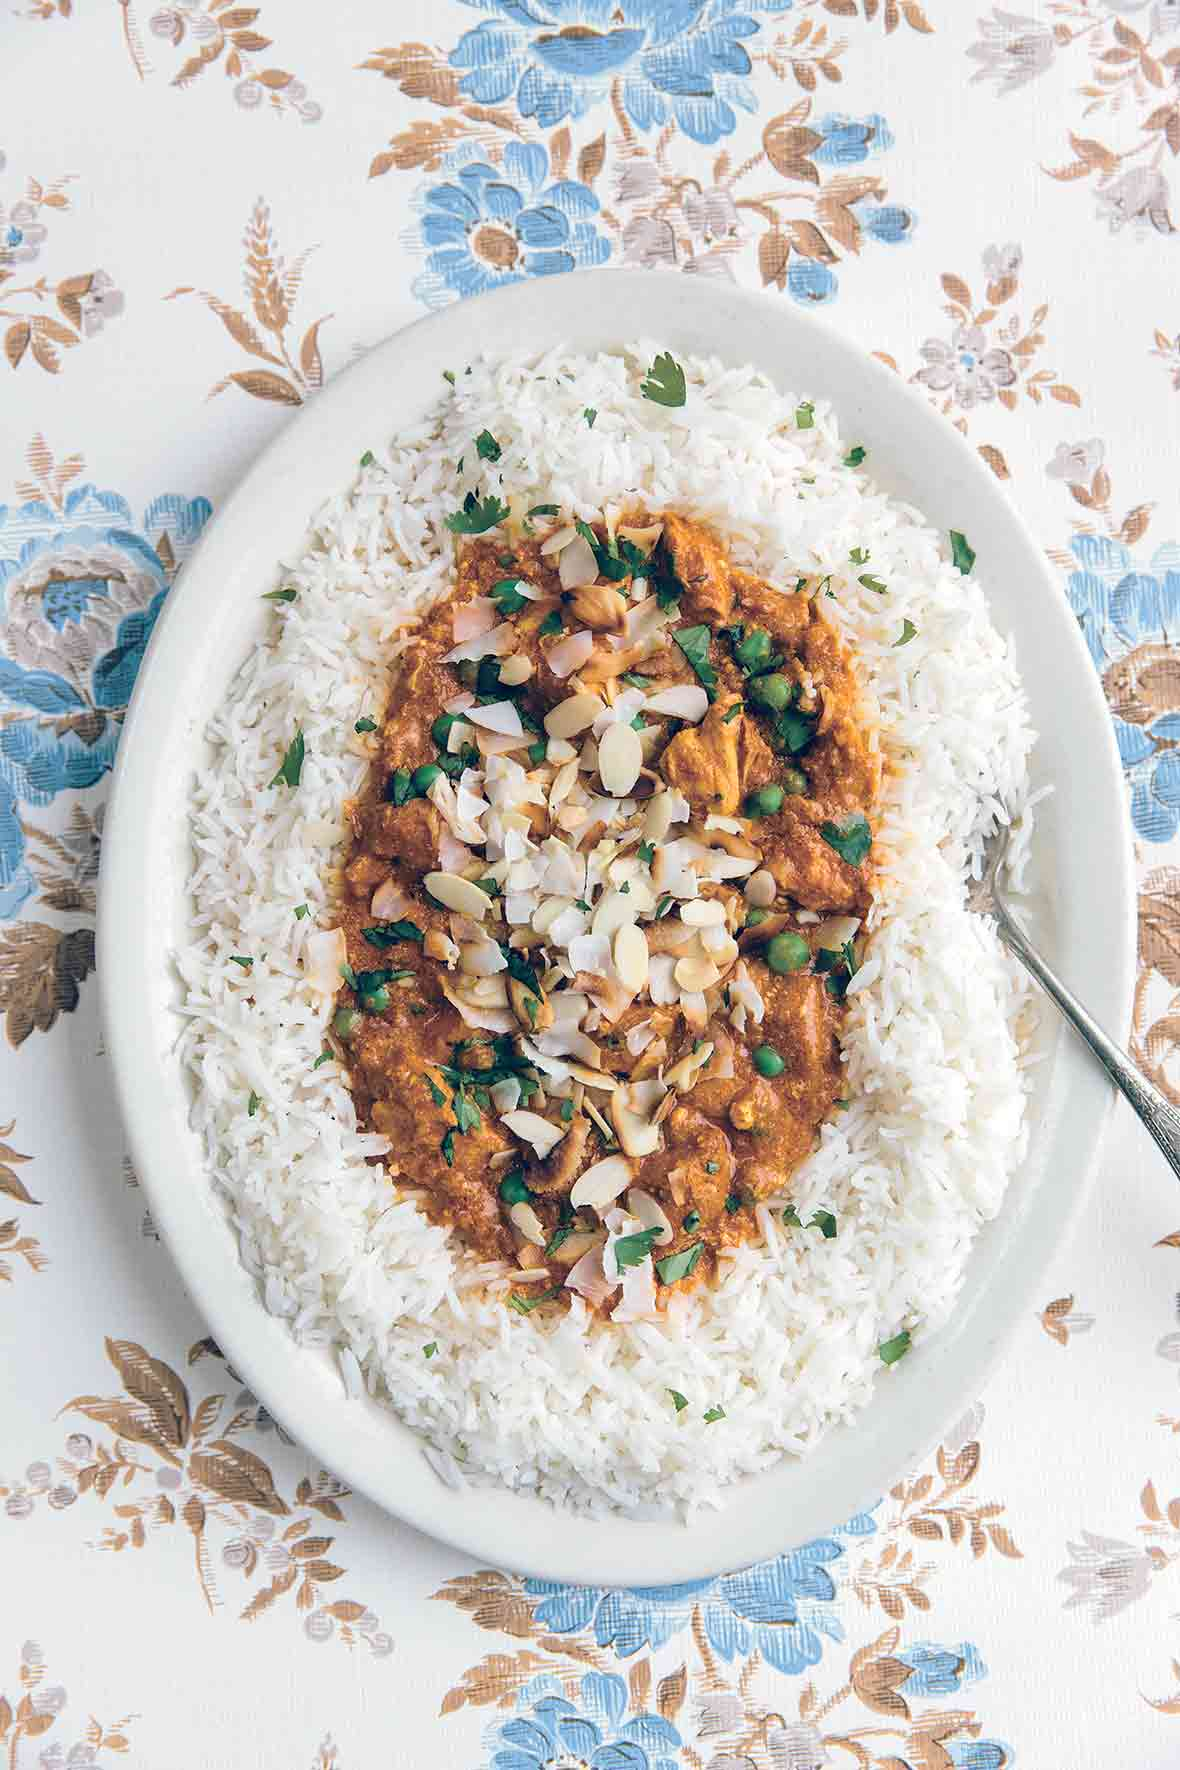 A white serving platter filled with slow cooker Indian butter chicken on a bed of basmati rice, topped with almonds and coconut